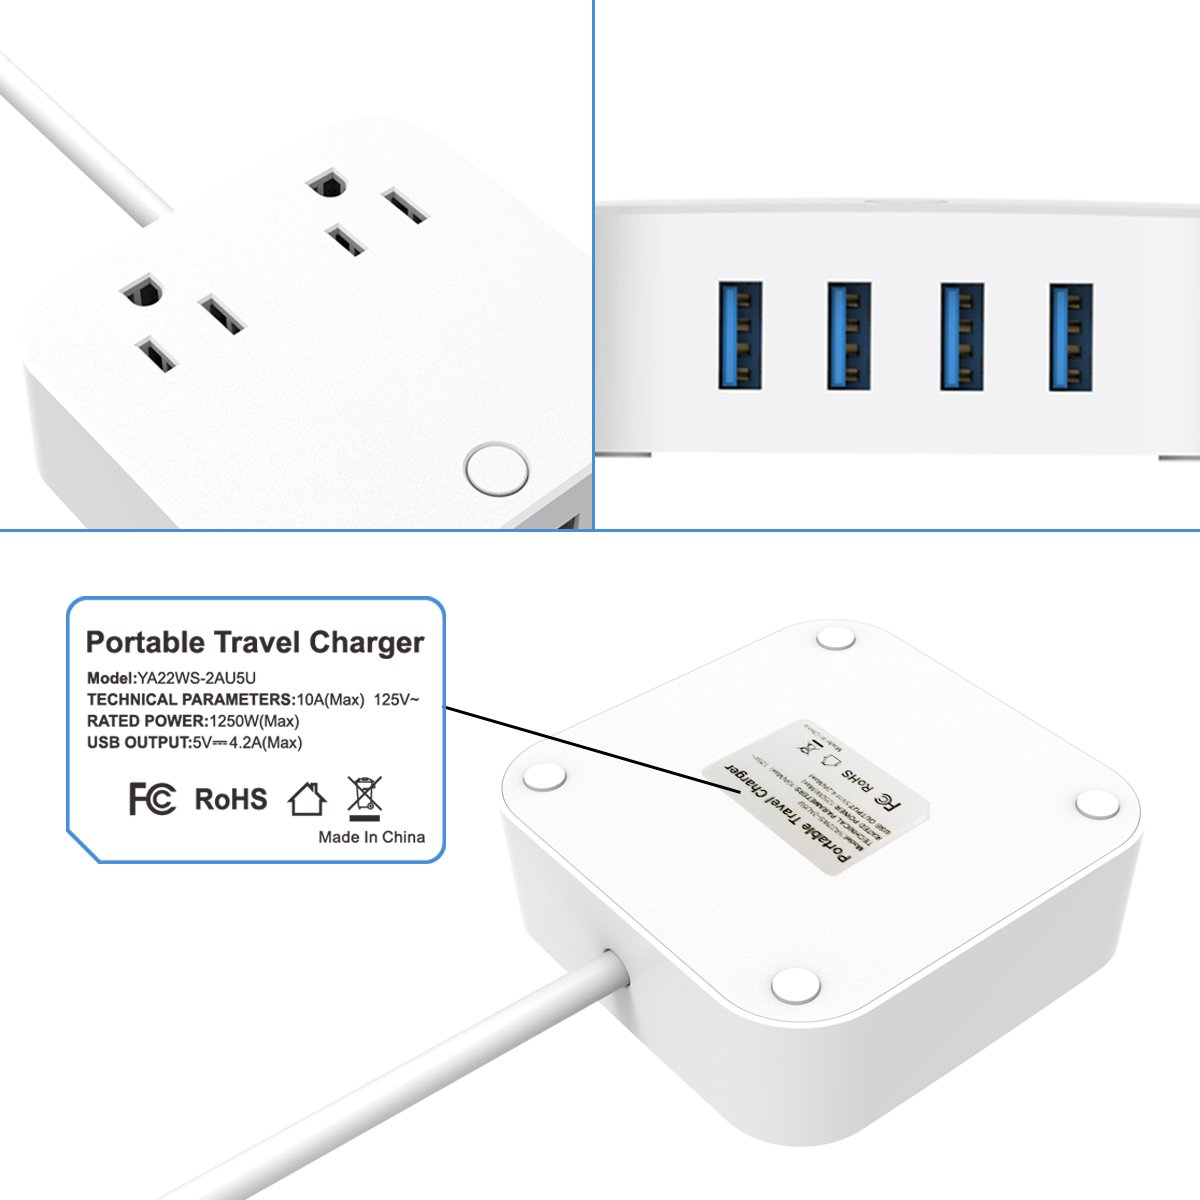 ❤ USB Extension Cord - Surge Protector Power Strip, Type-C Charging Port (5V/3A) & 4 USB Ports (5V/2.4A), Portable Travel Charger Station for iPhone iPad Samsung & Tablets, USB C Not for Laptops by HITRENDS (Image #4)